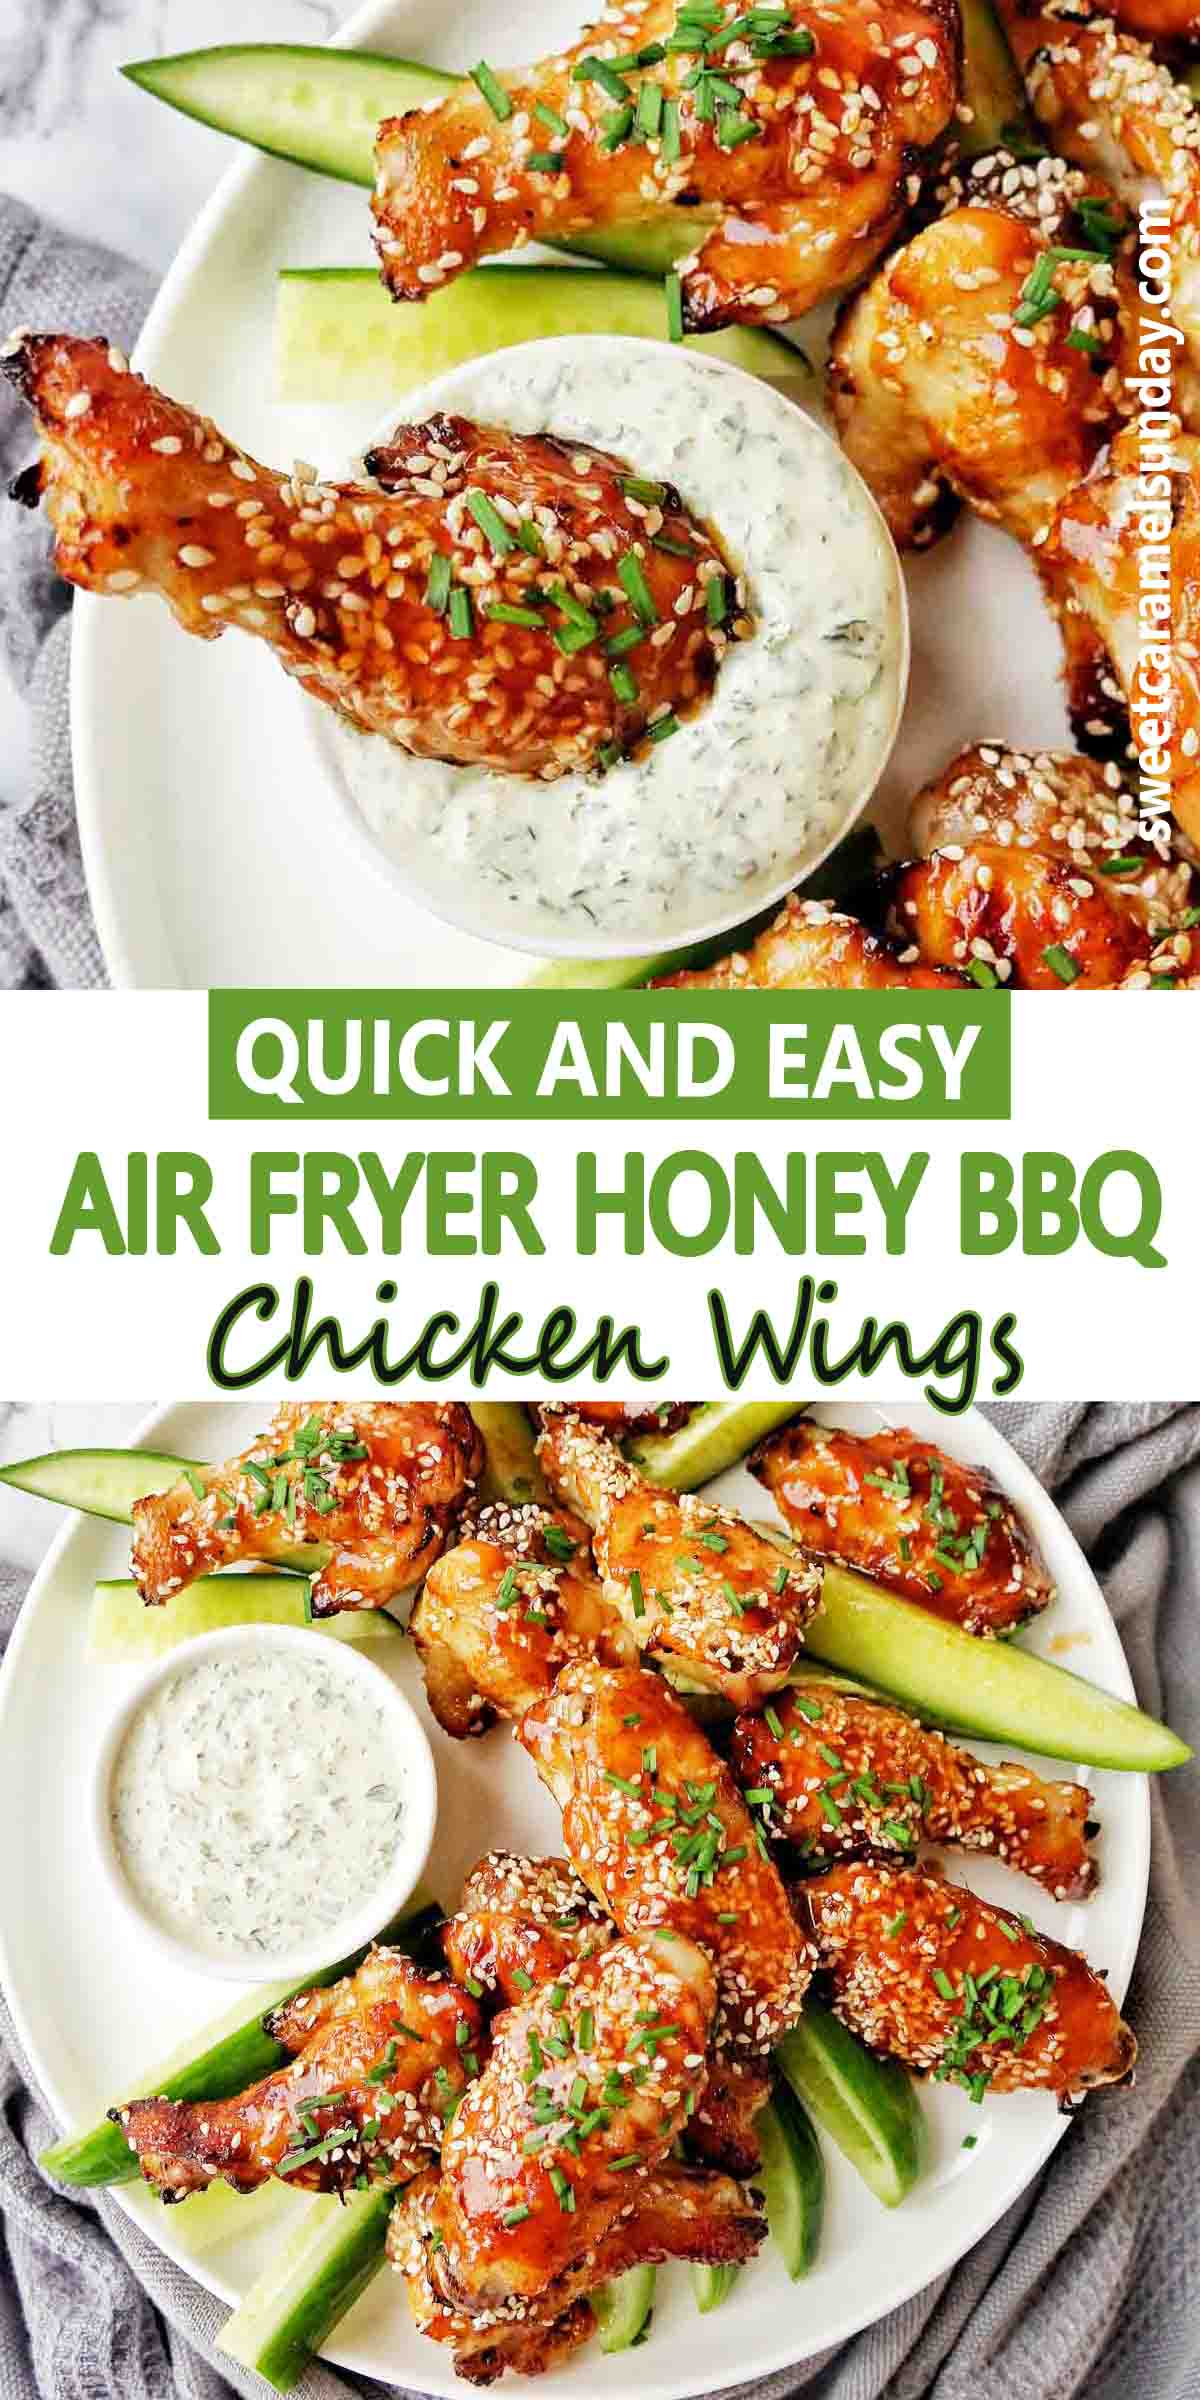 Air Fryer Honey BBQ Chicken Wings with text label